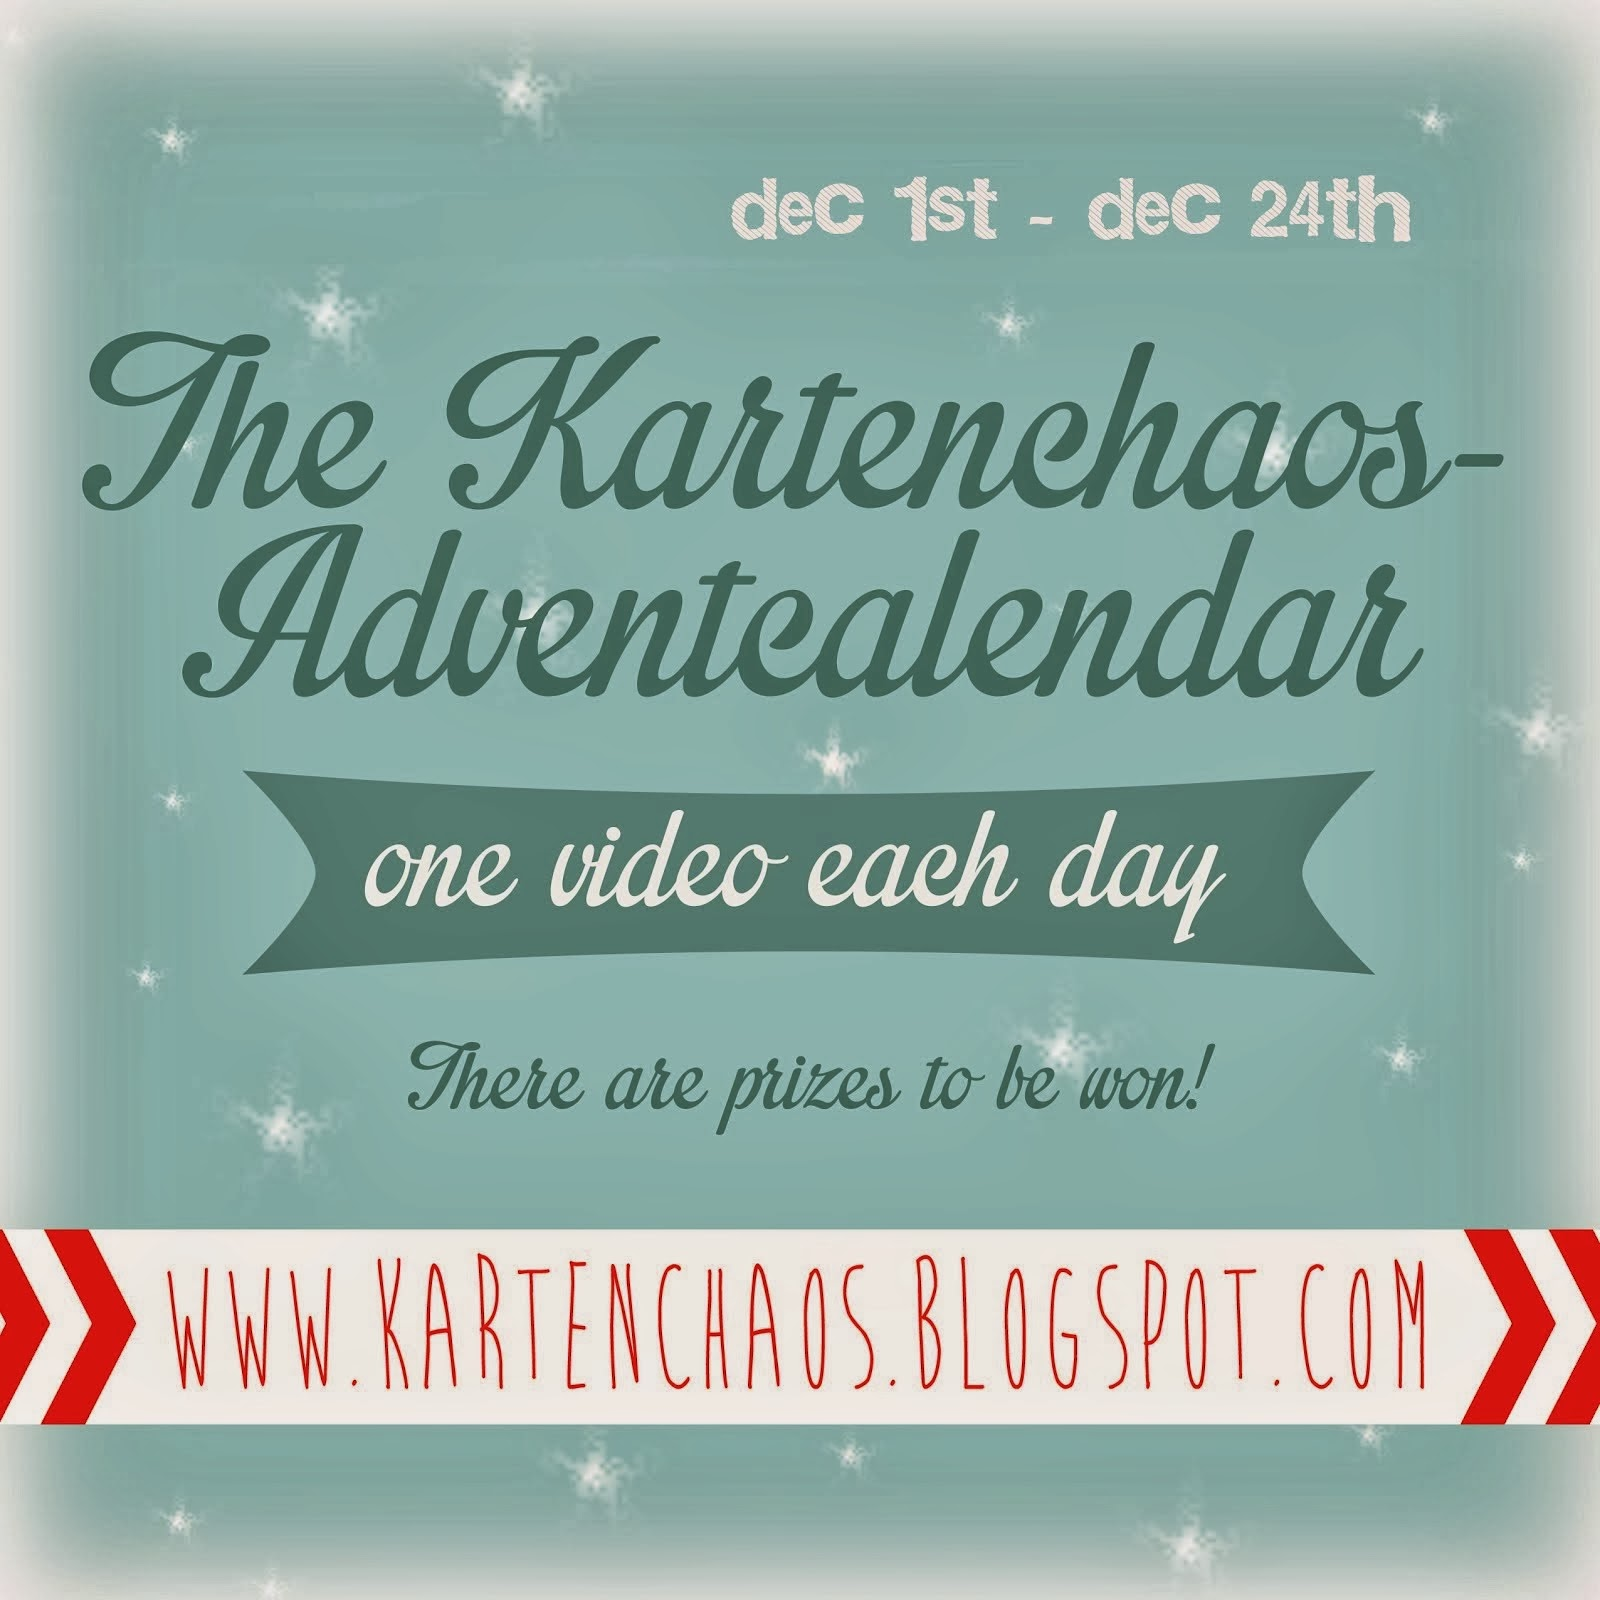 Video Advent Calendar